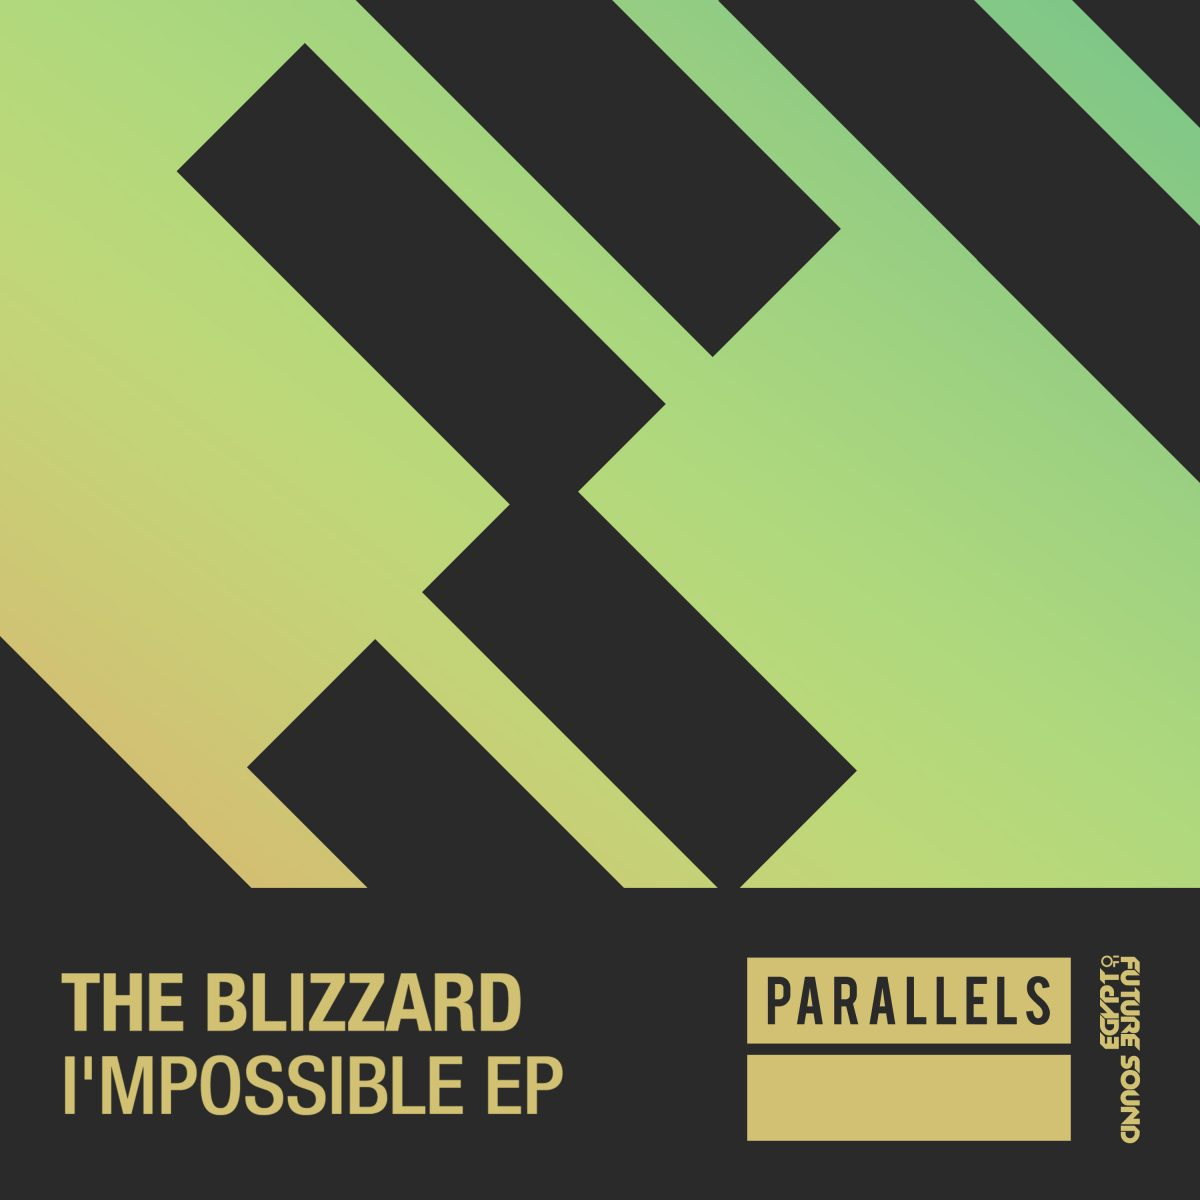 The Blizzard - I'mpossible / Dunesd on FSOE Parallels